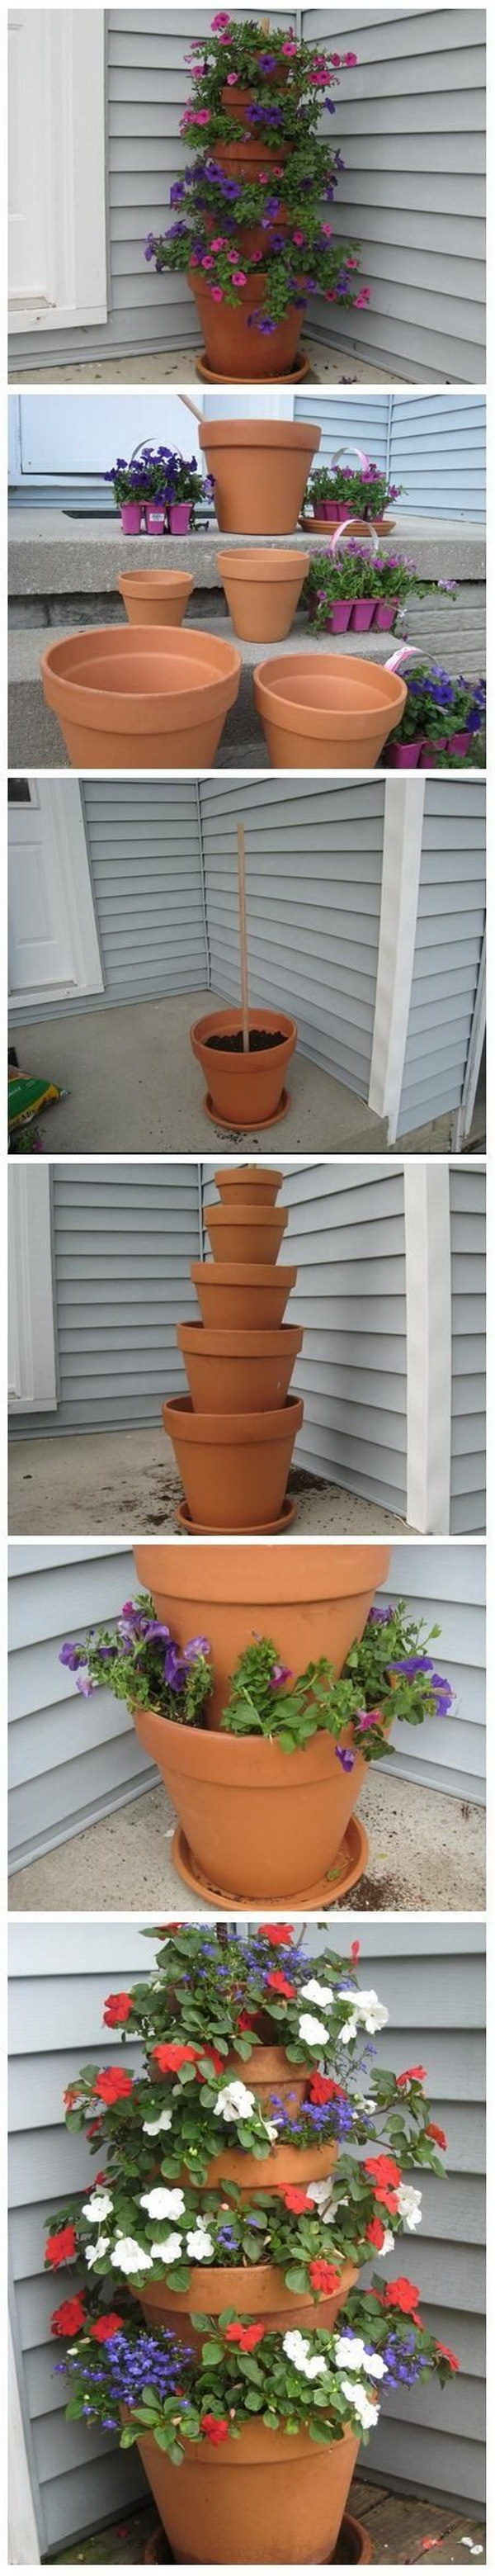 DIY Terra Cotta Pot Flower Garden Tower.